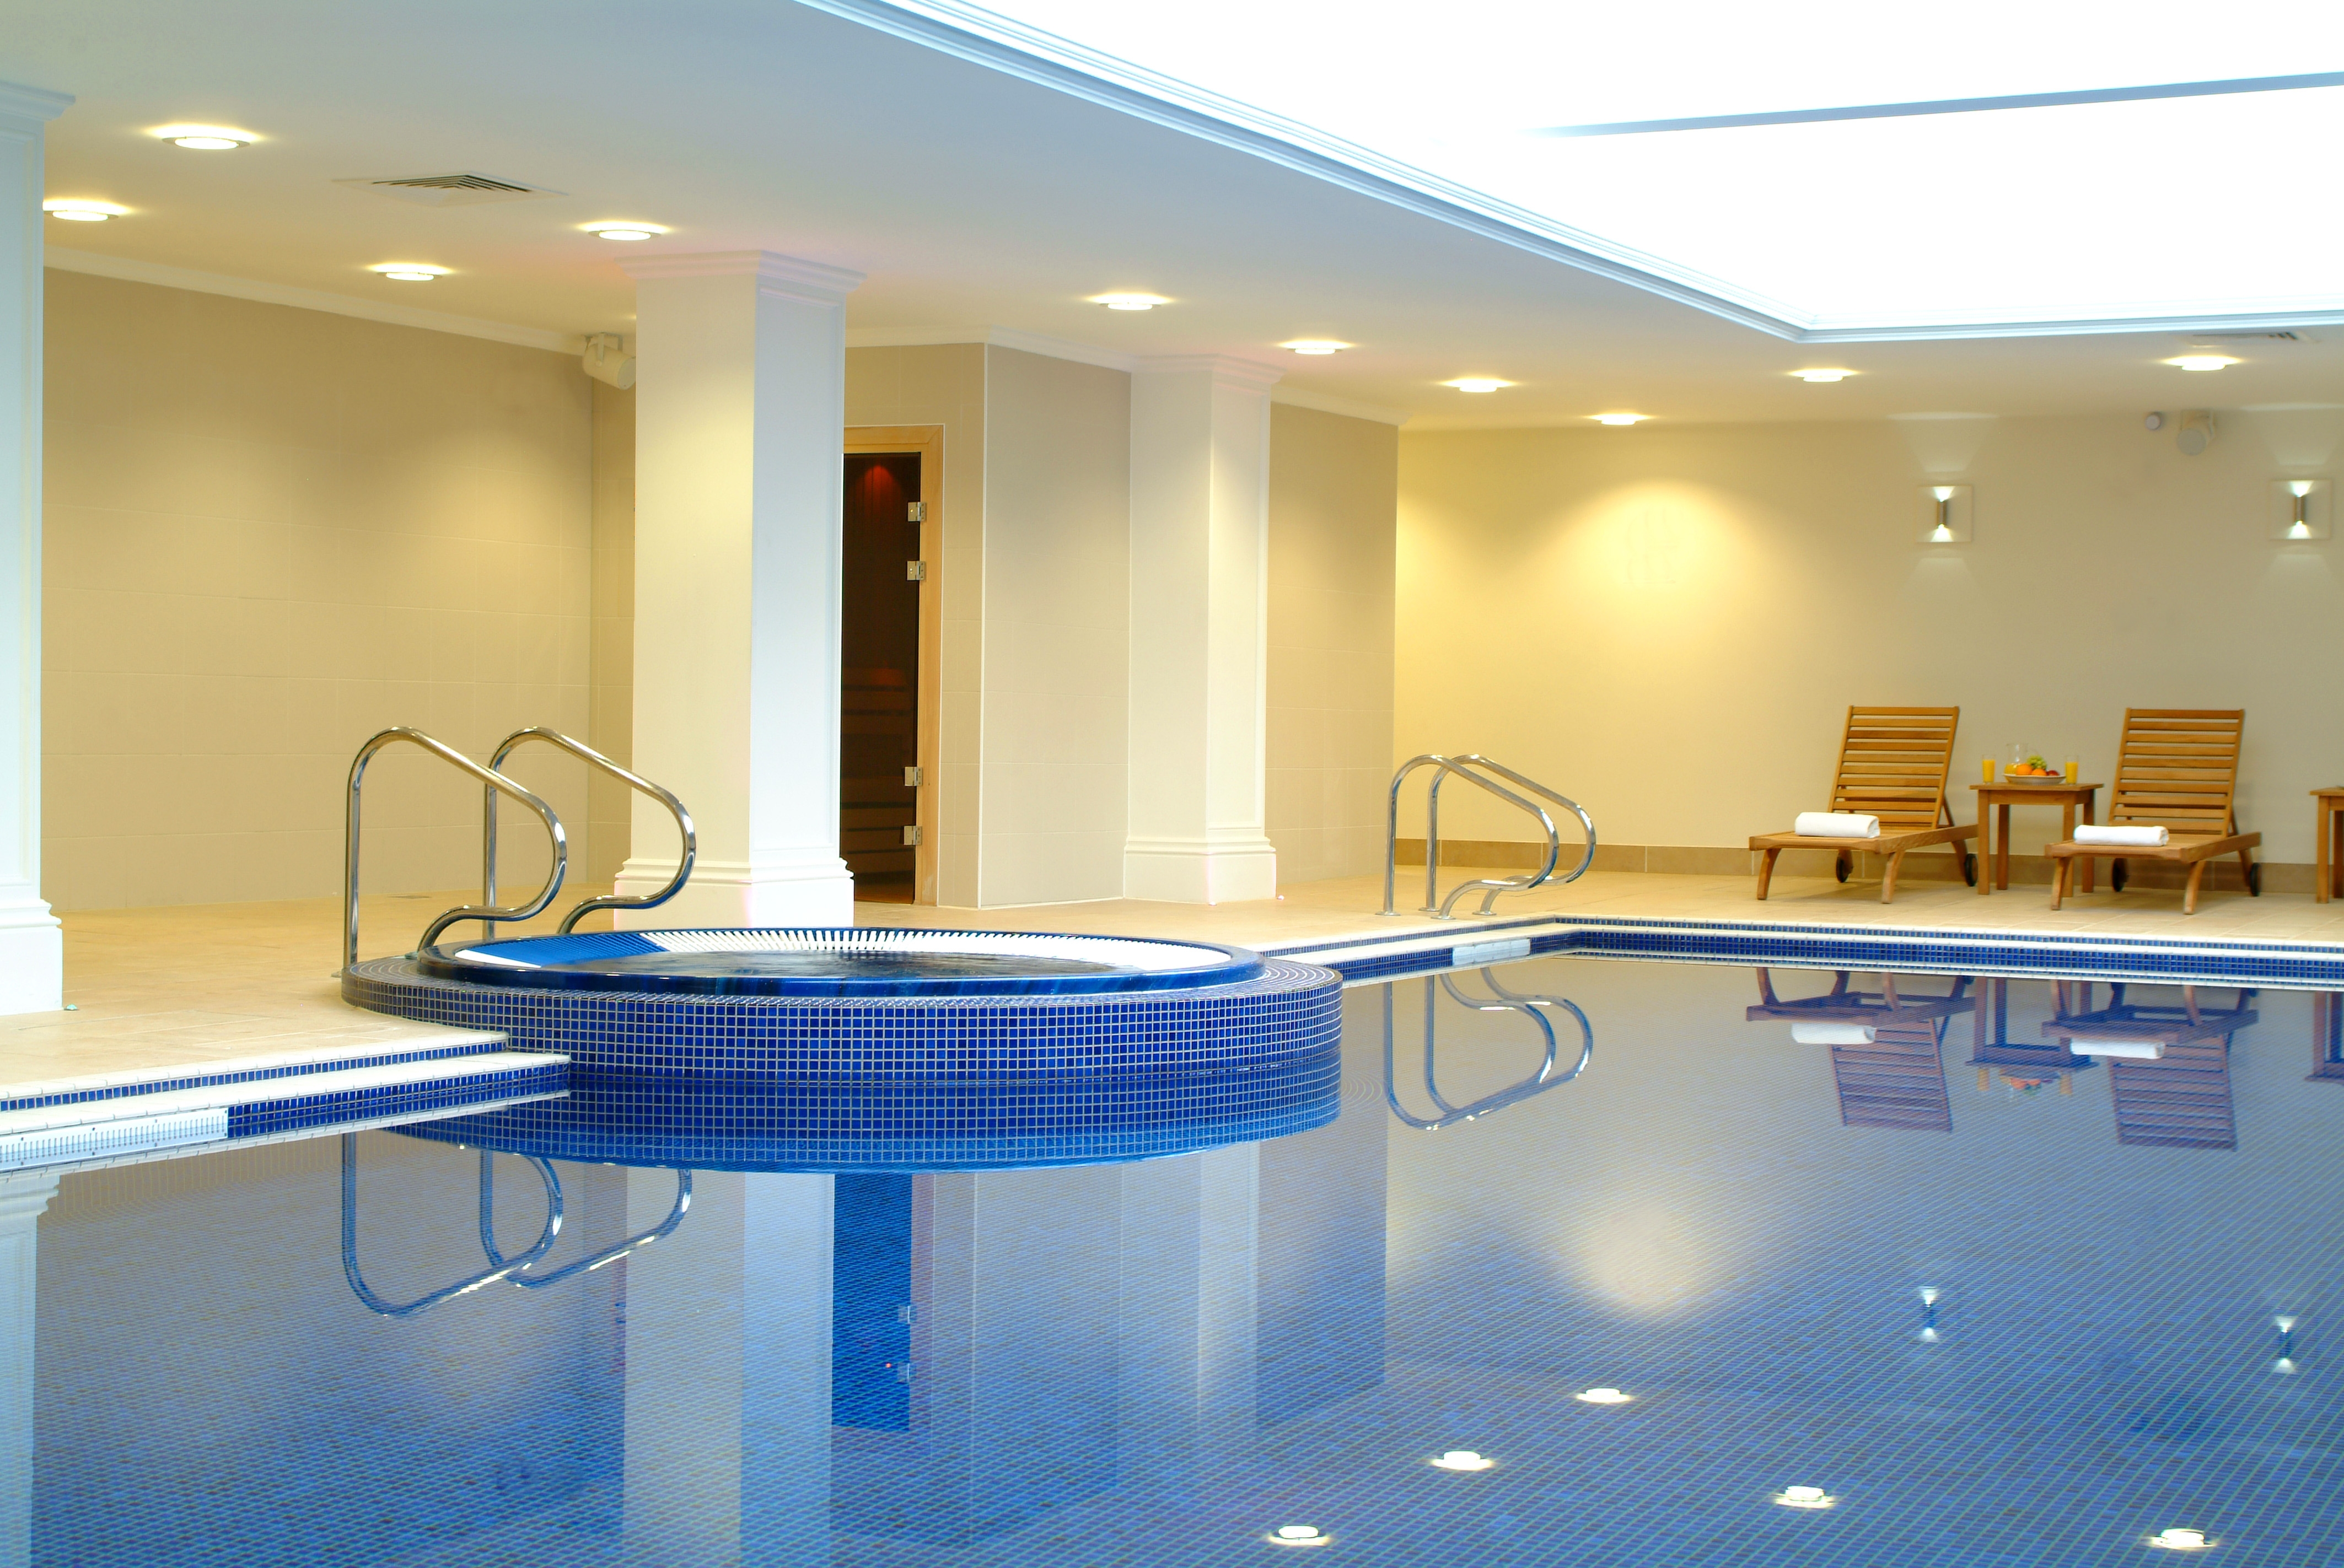 Great Summer Deals At Savill Court Hotel Near Egham Surrey 99 B Per Family Room Night Usual Price For Only 210